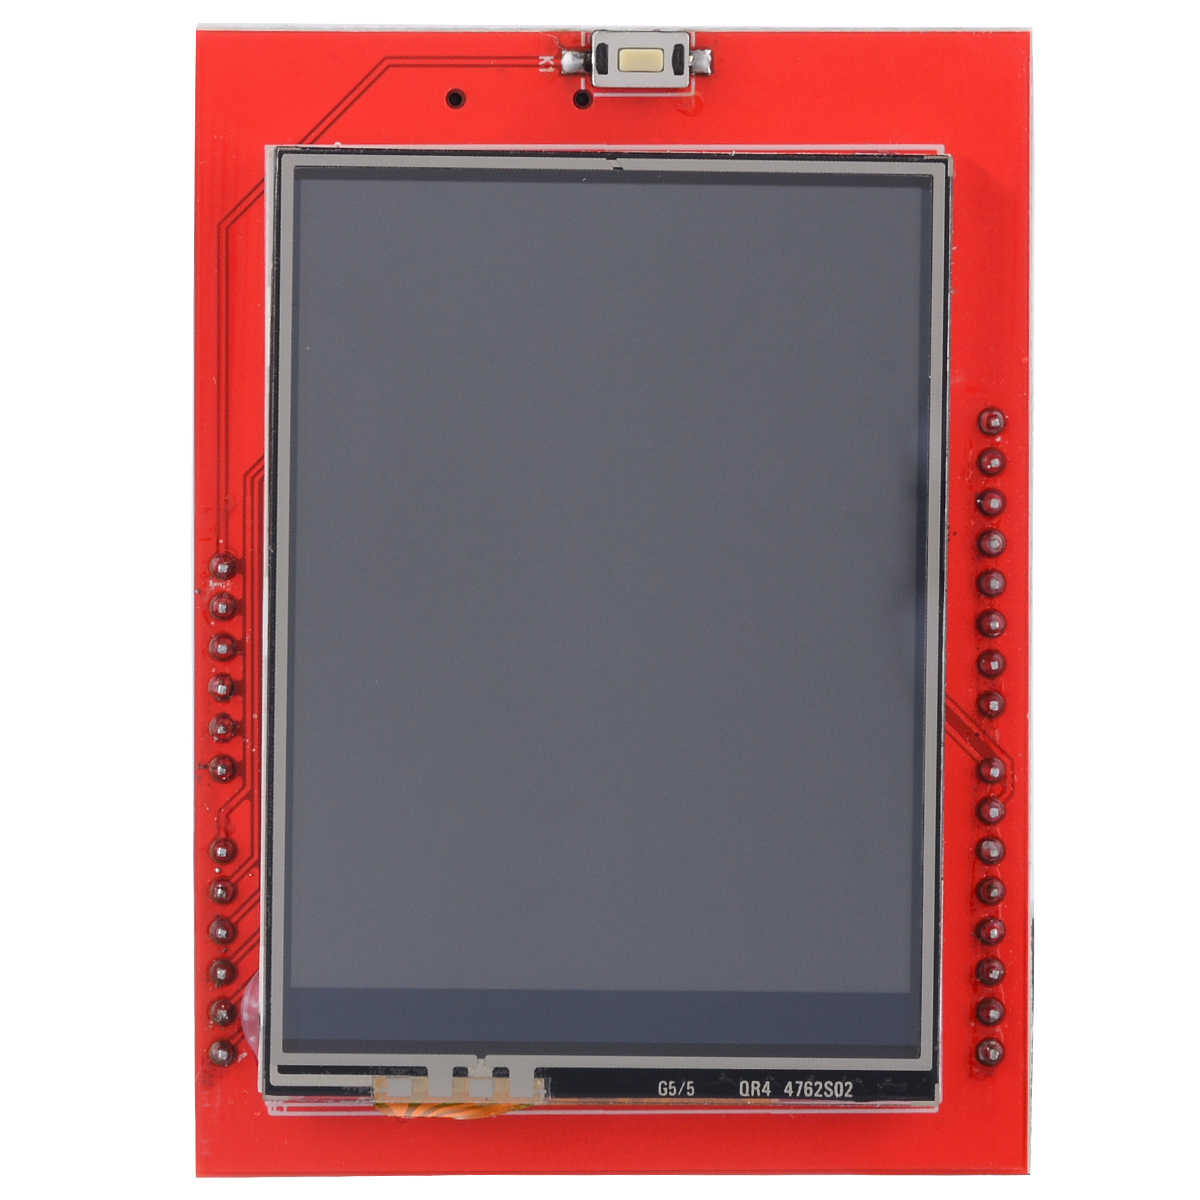 "1pcs 240x320 2.4"" TFT LCD Display Shield Touch Panel Serial Port Module Driver IC ILI9341 for Arduino ZH6"